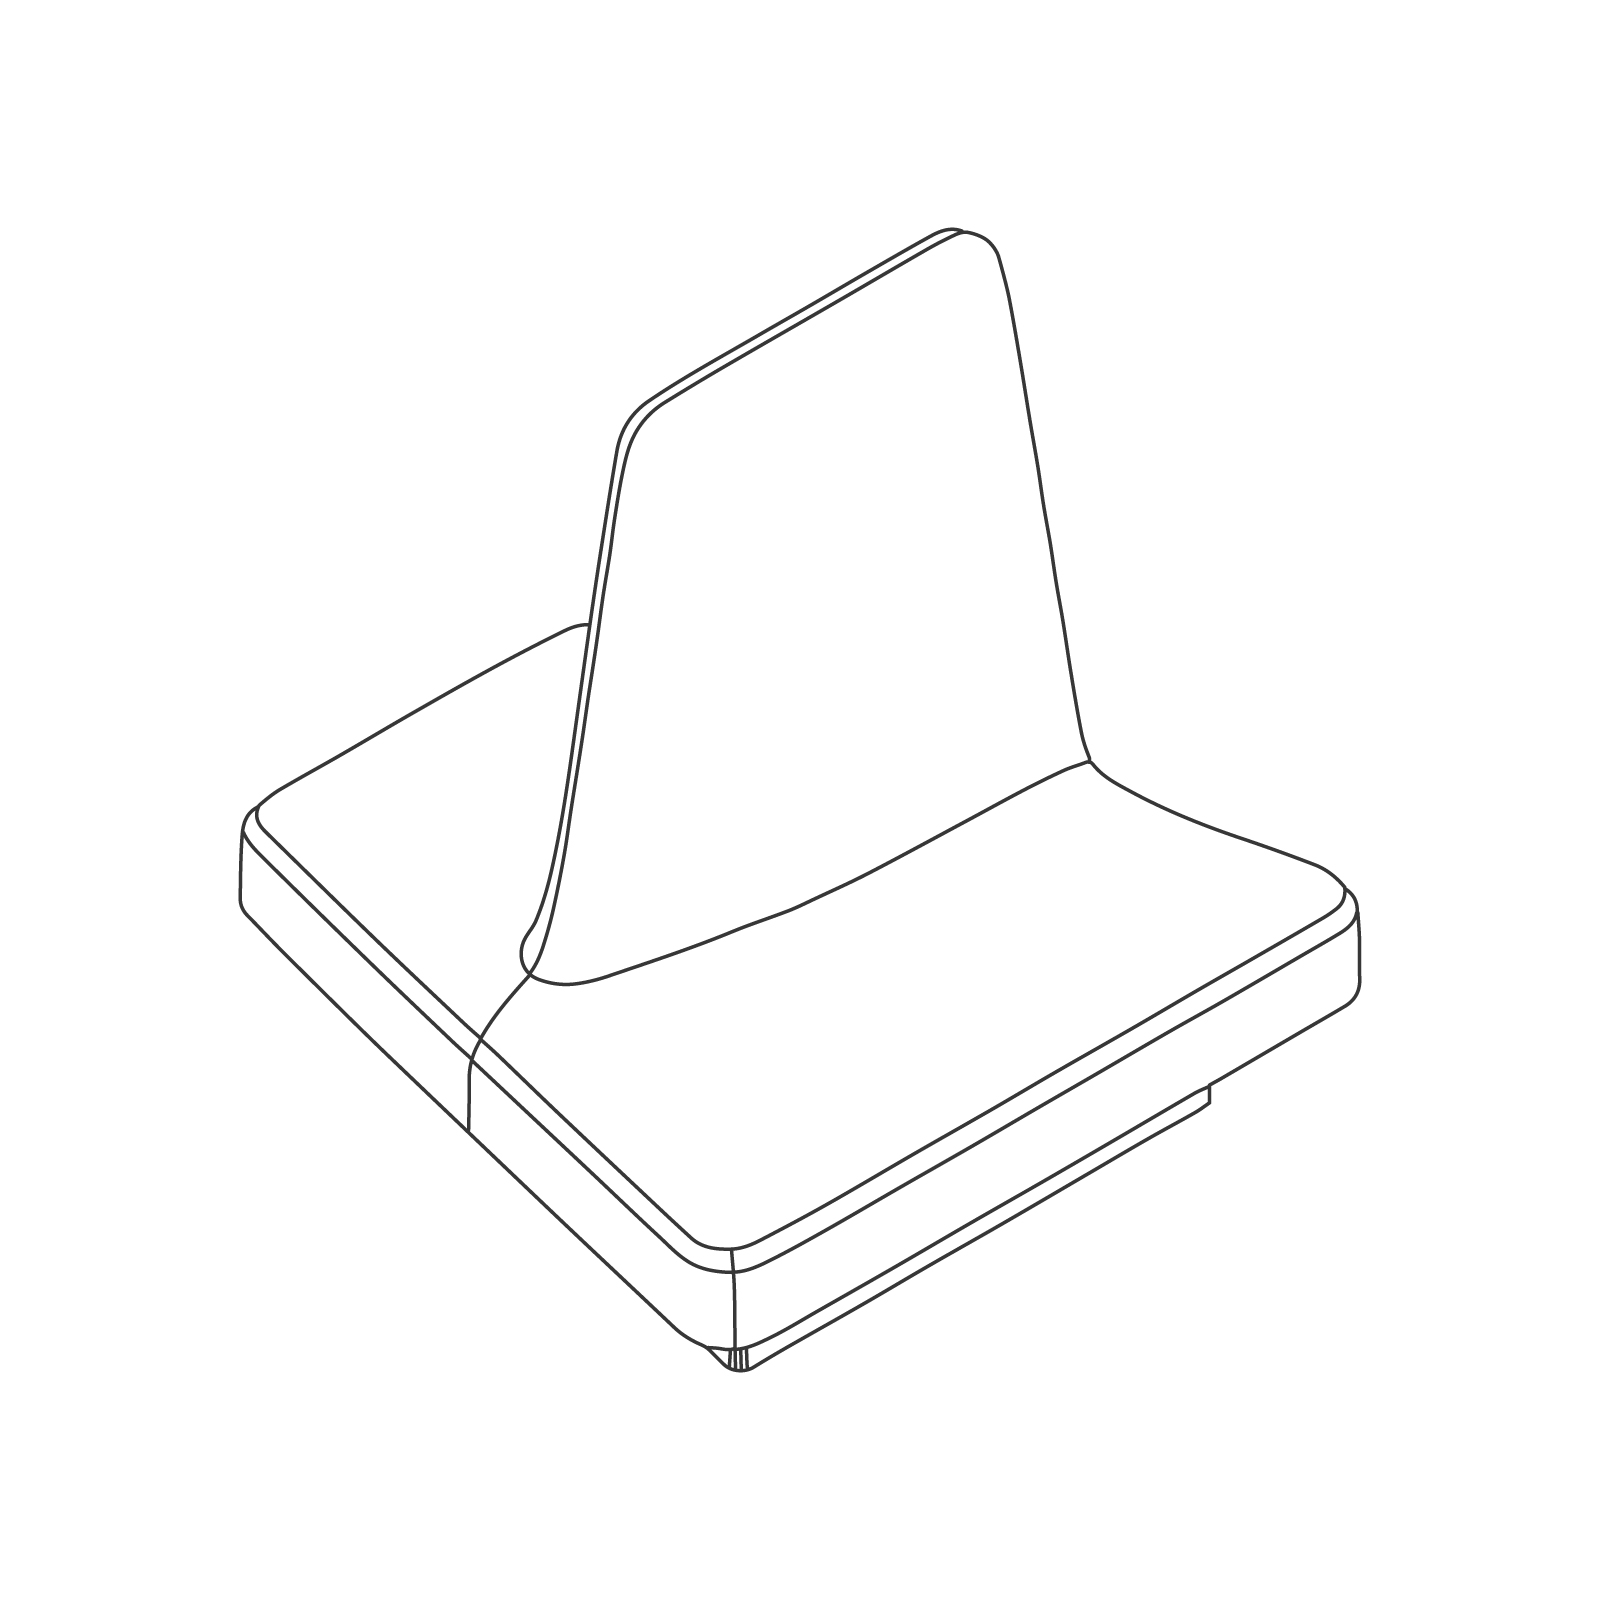 A line drawing of Rhyme Modular Seating–End B.